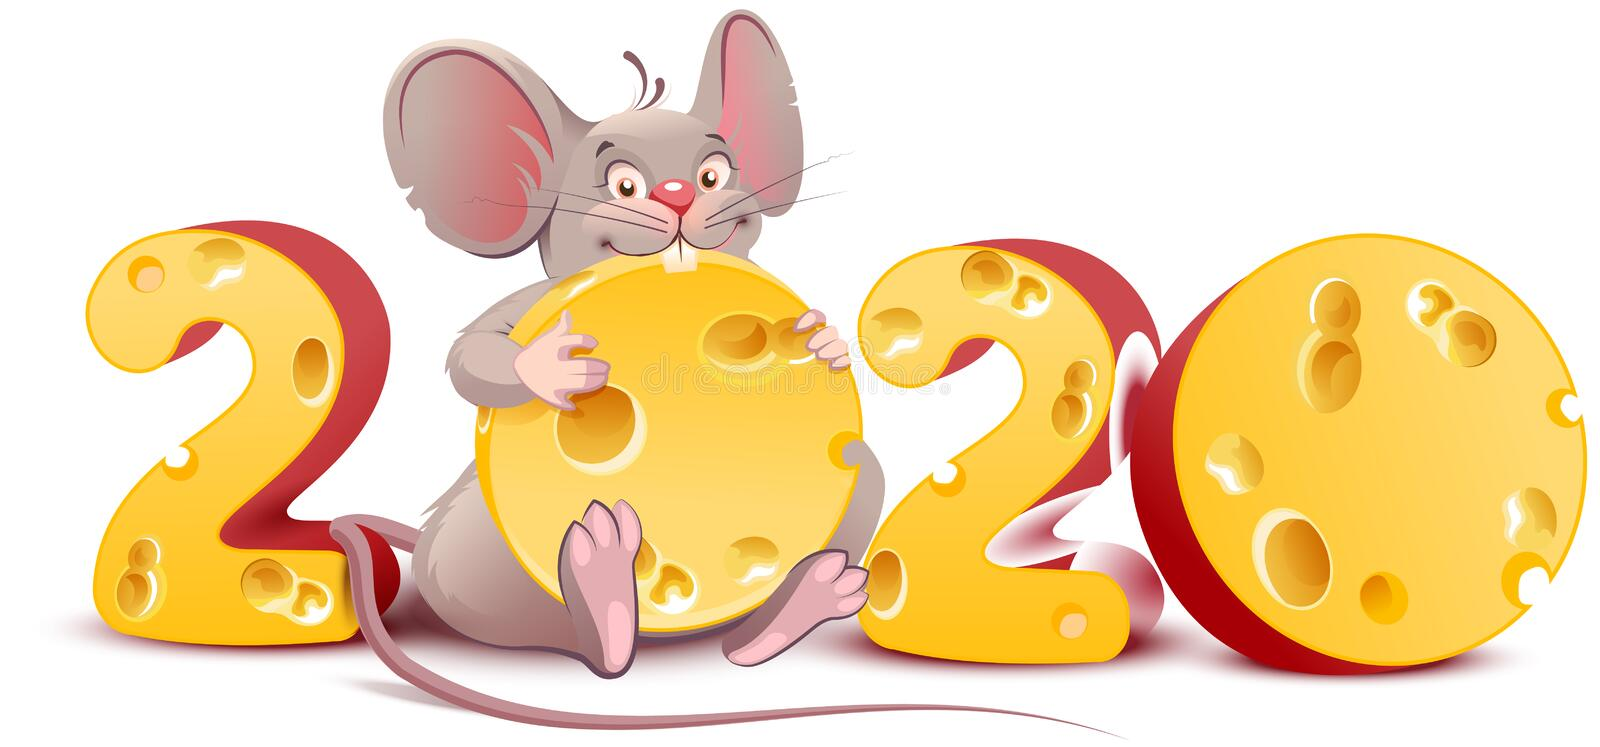 2020 year of mouse. Cute cartoon rat holds cheese stock illustration